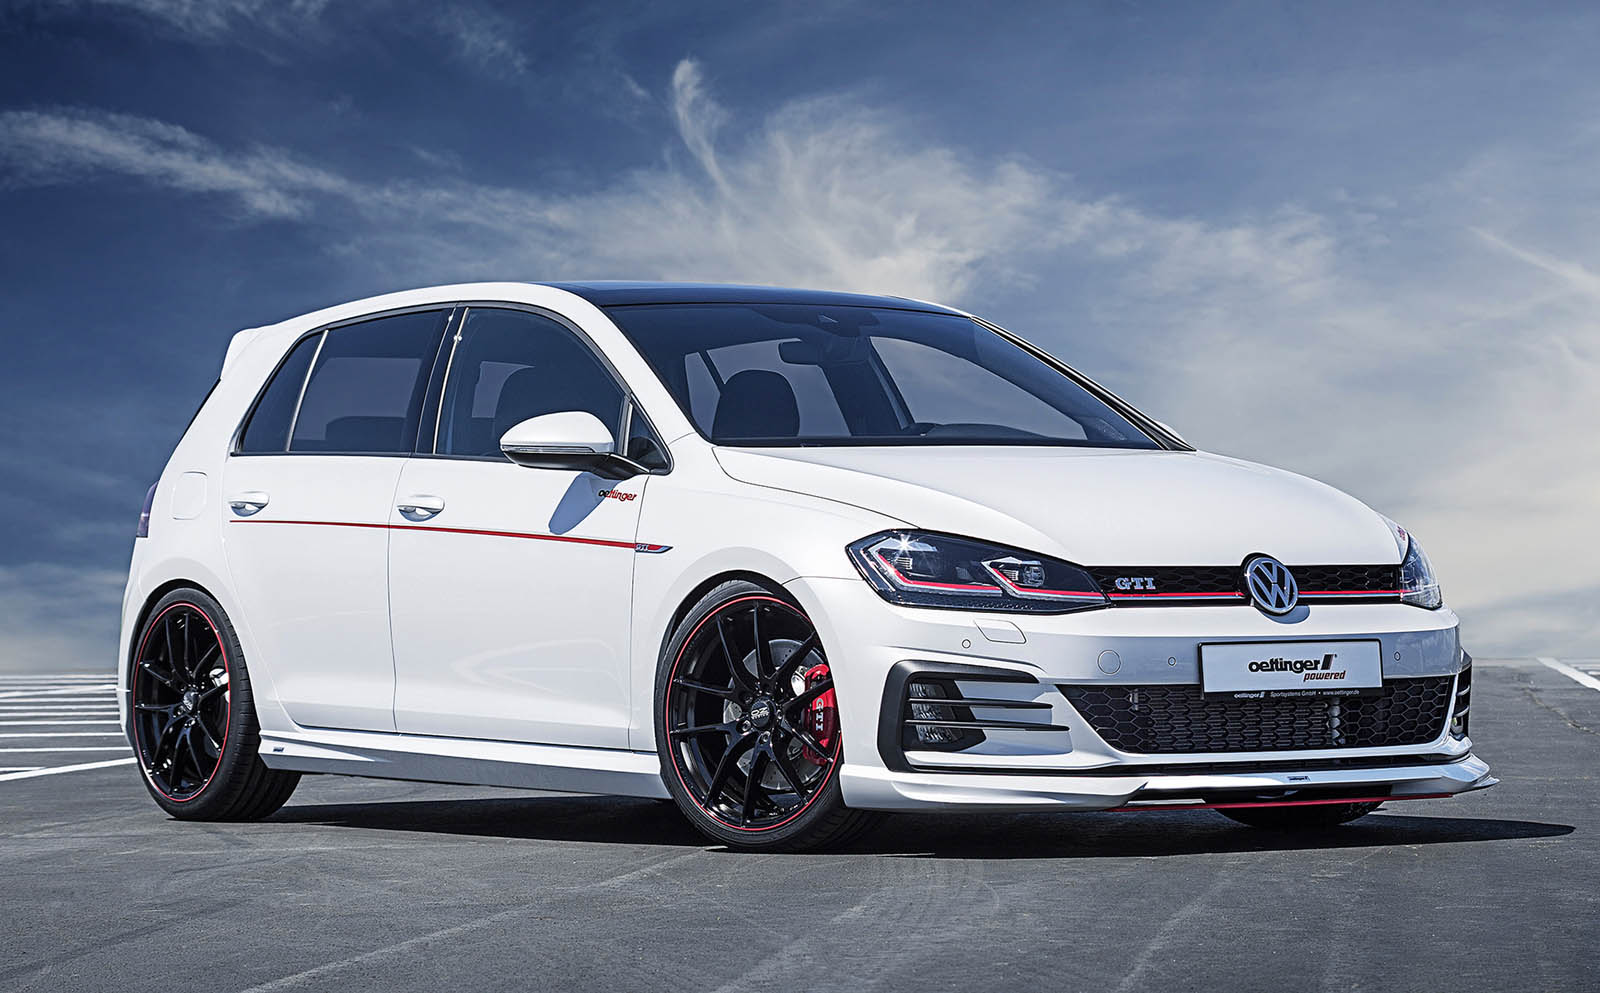 Vw Golf Gti Performance 2017 >> Oettinger Goes Worthersee With Comprehensive Golf GTI/R Upgrades